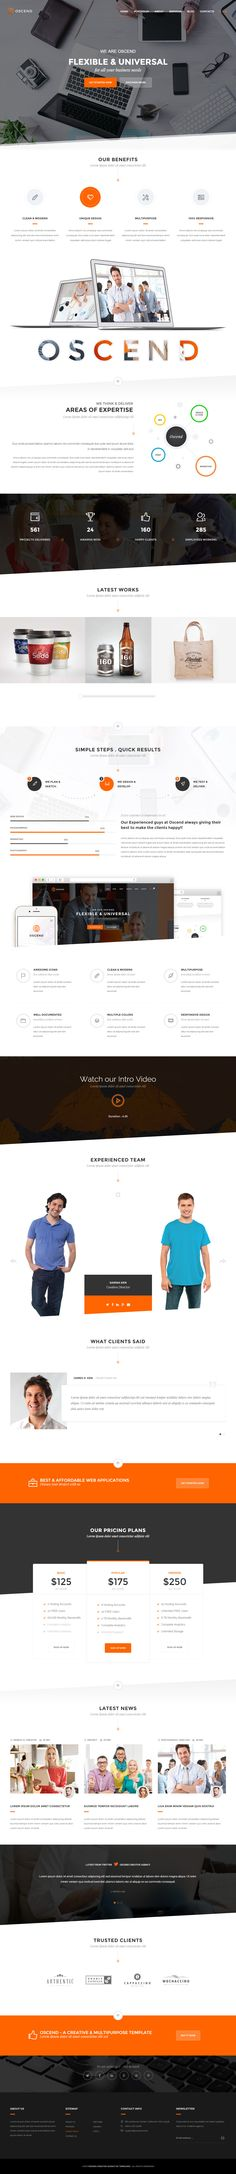 Shipwrecked is Premium full Responsive #HTML5 #404 Page #Template - free test templates